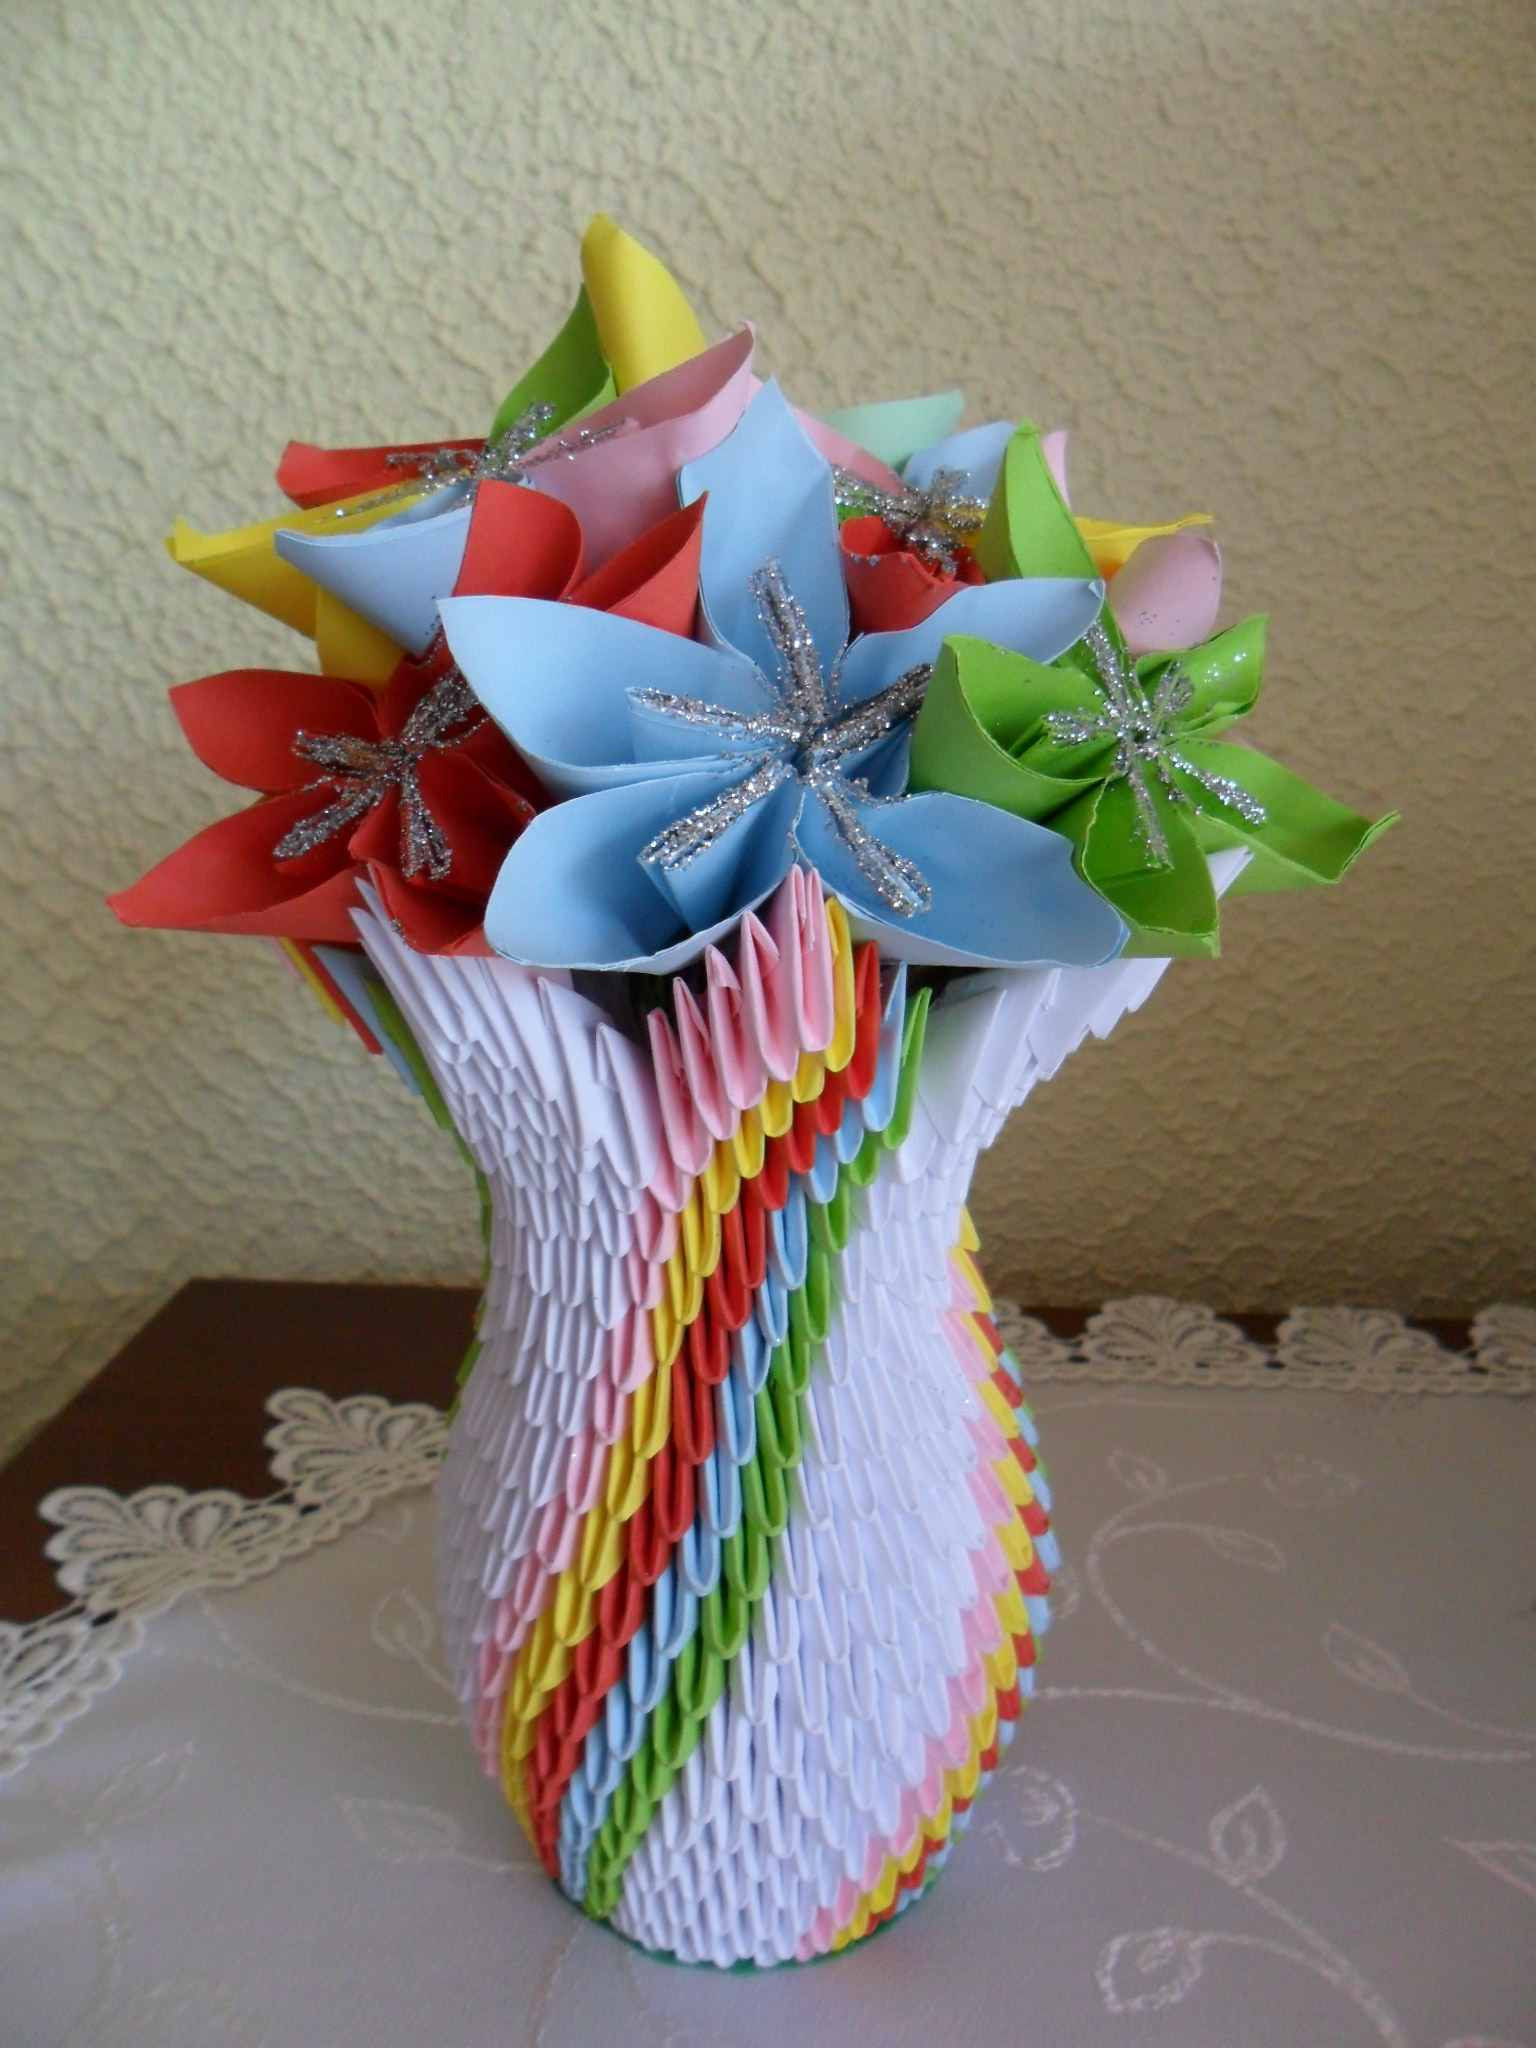 24 inch square vase of how to make 3d origami units throughout 3d vase 56a6d5c13df78cf772907945 jpg